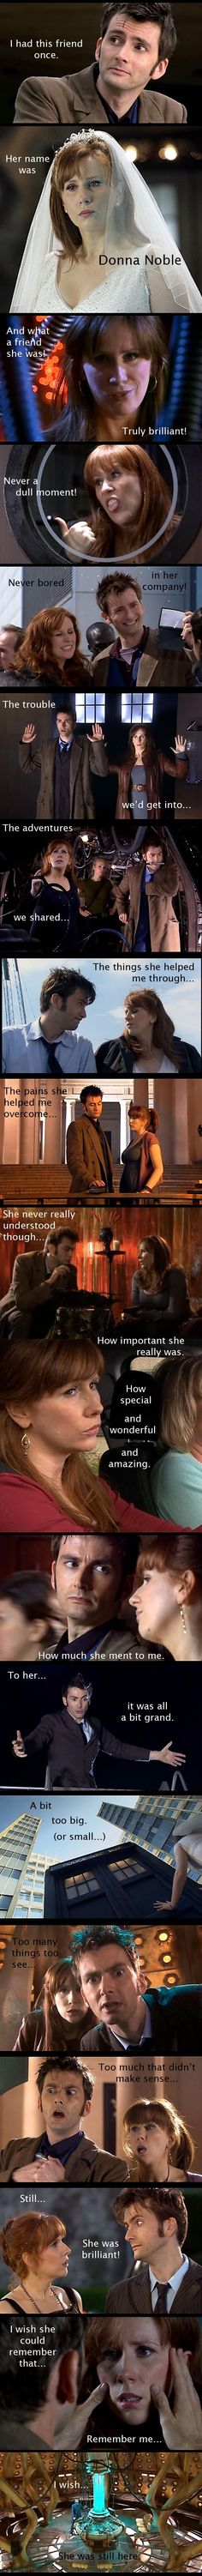 All of the Doctors companions had a huge effect on him but Donna is the only one that will never remember the wonderful times they shared...